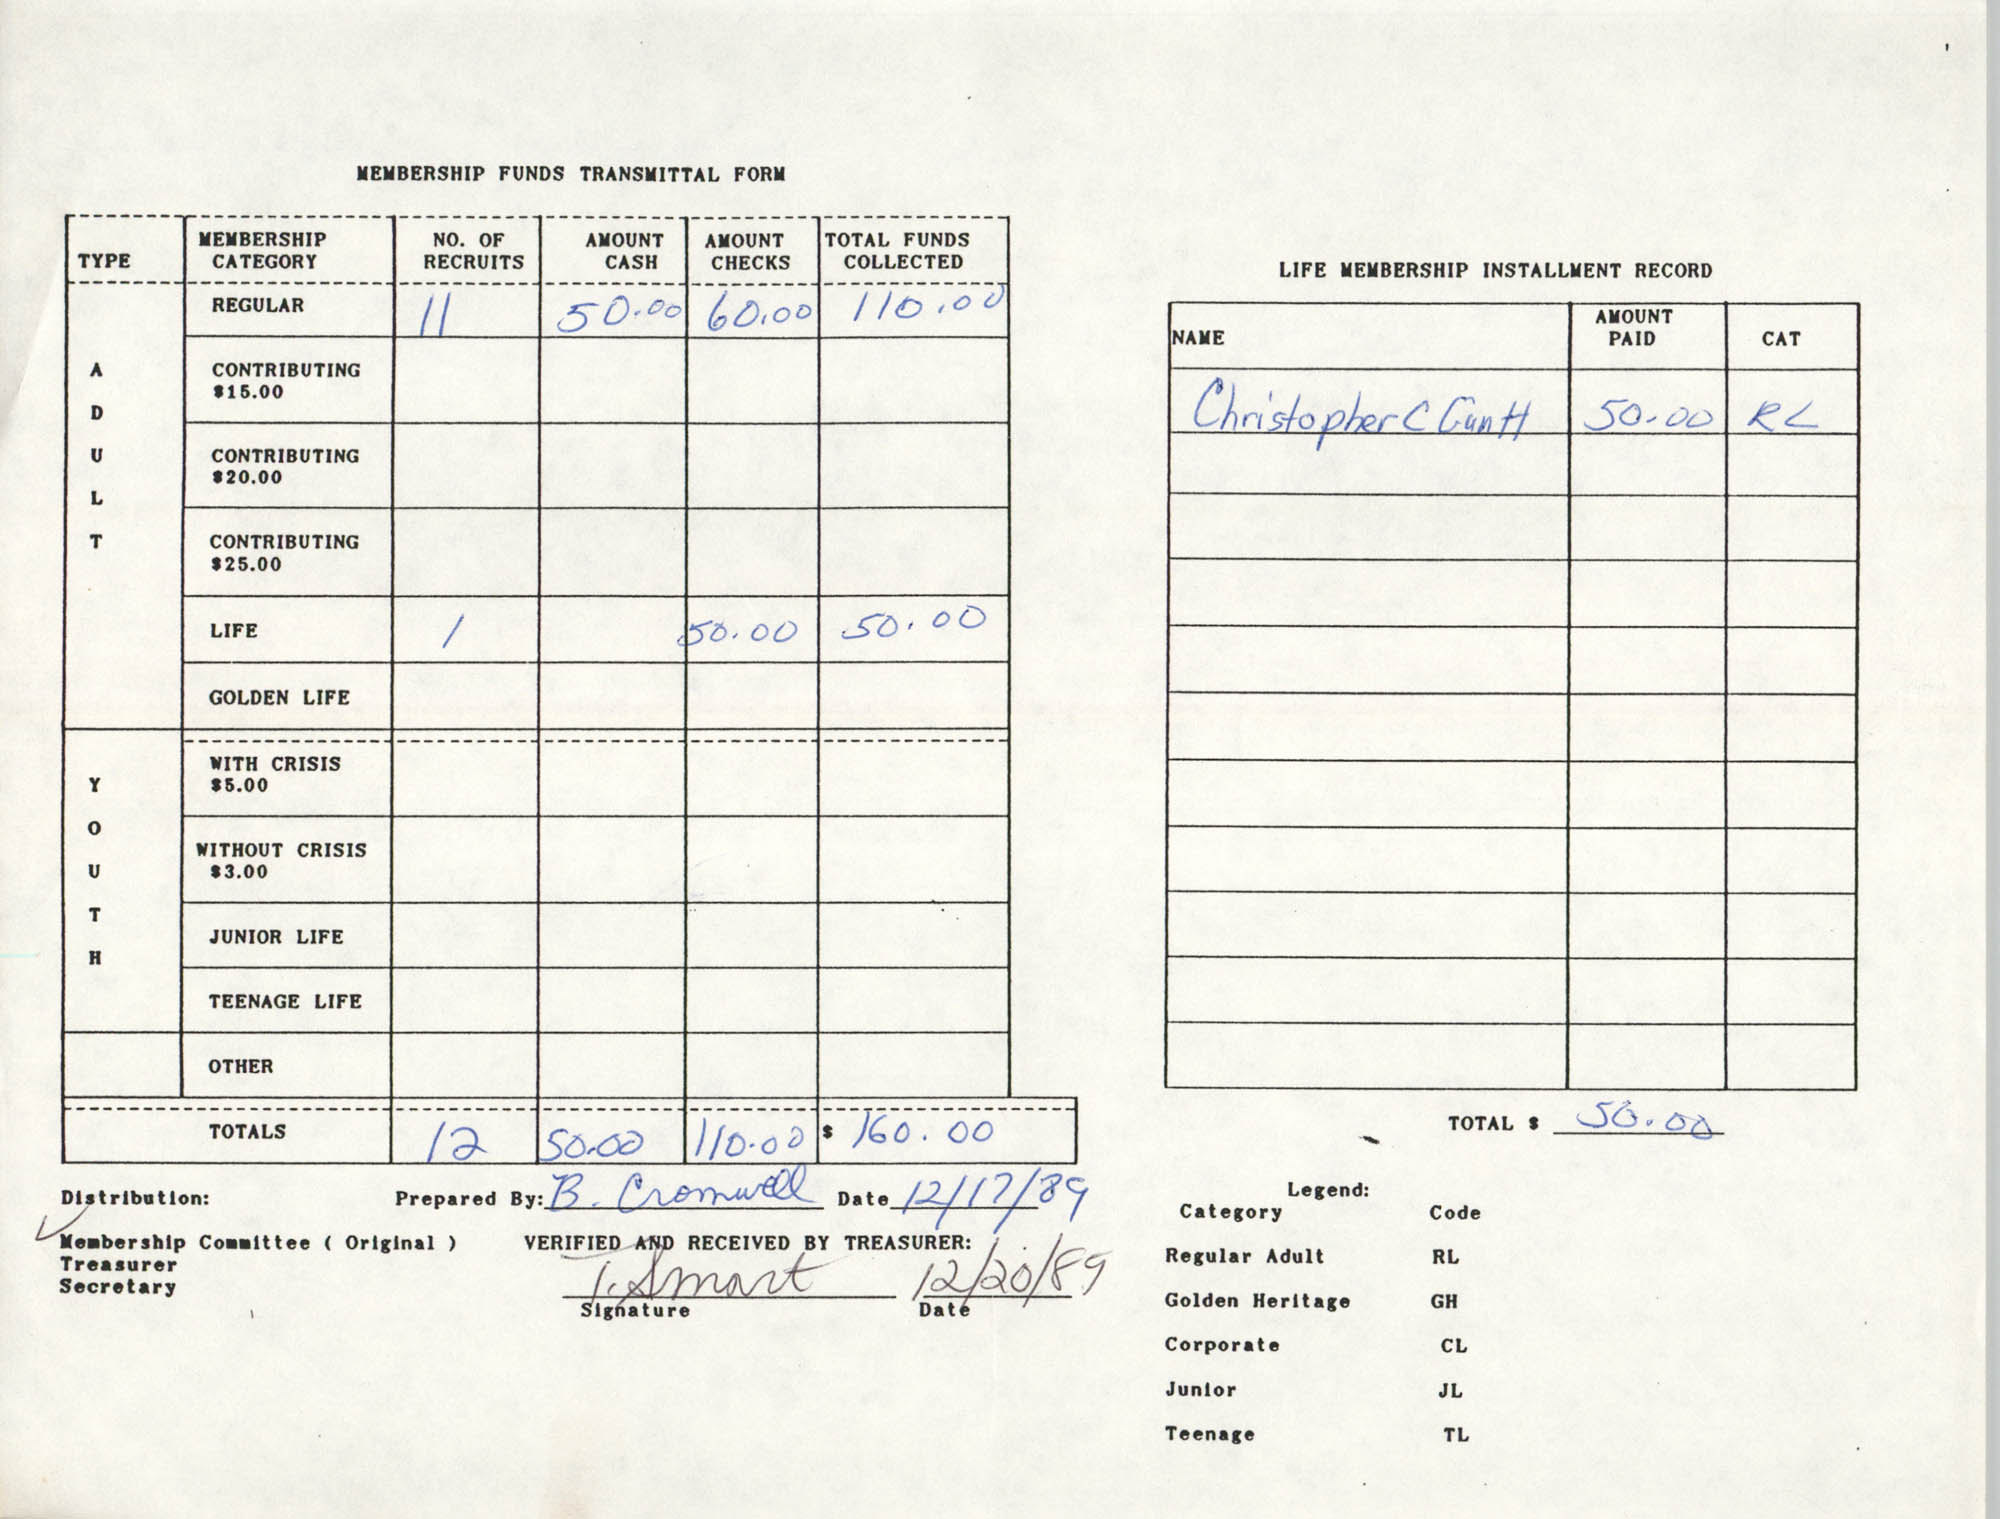 Charleston Branch of the NAACP Funds Transmittal Forms, December 1989, Page 5